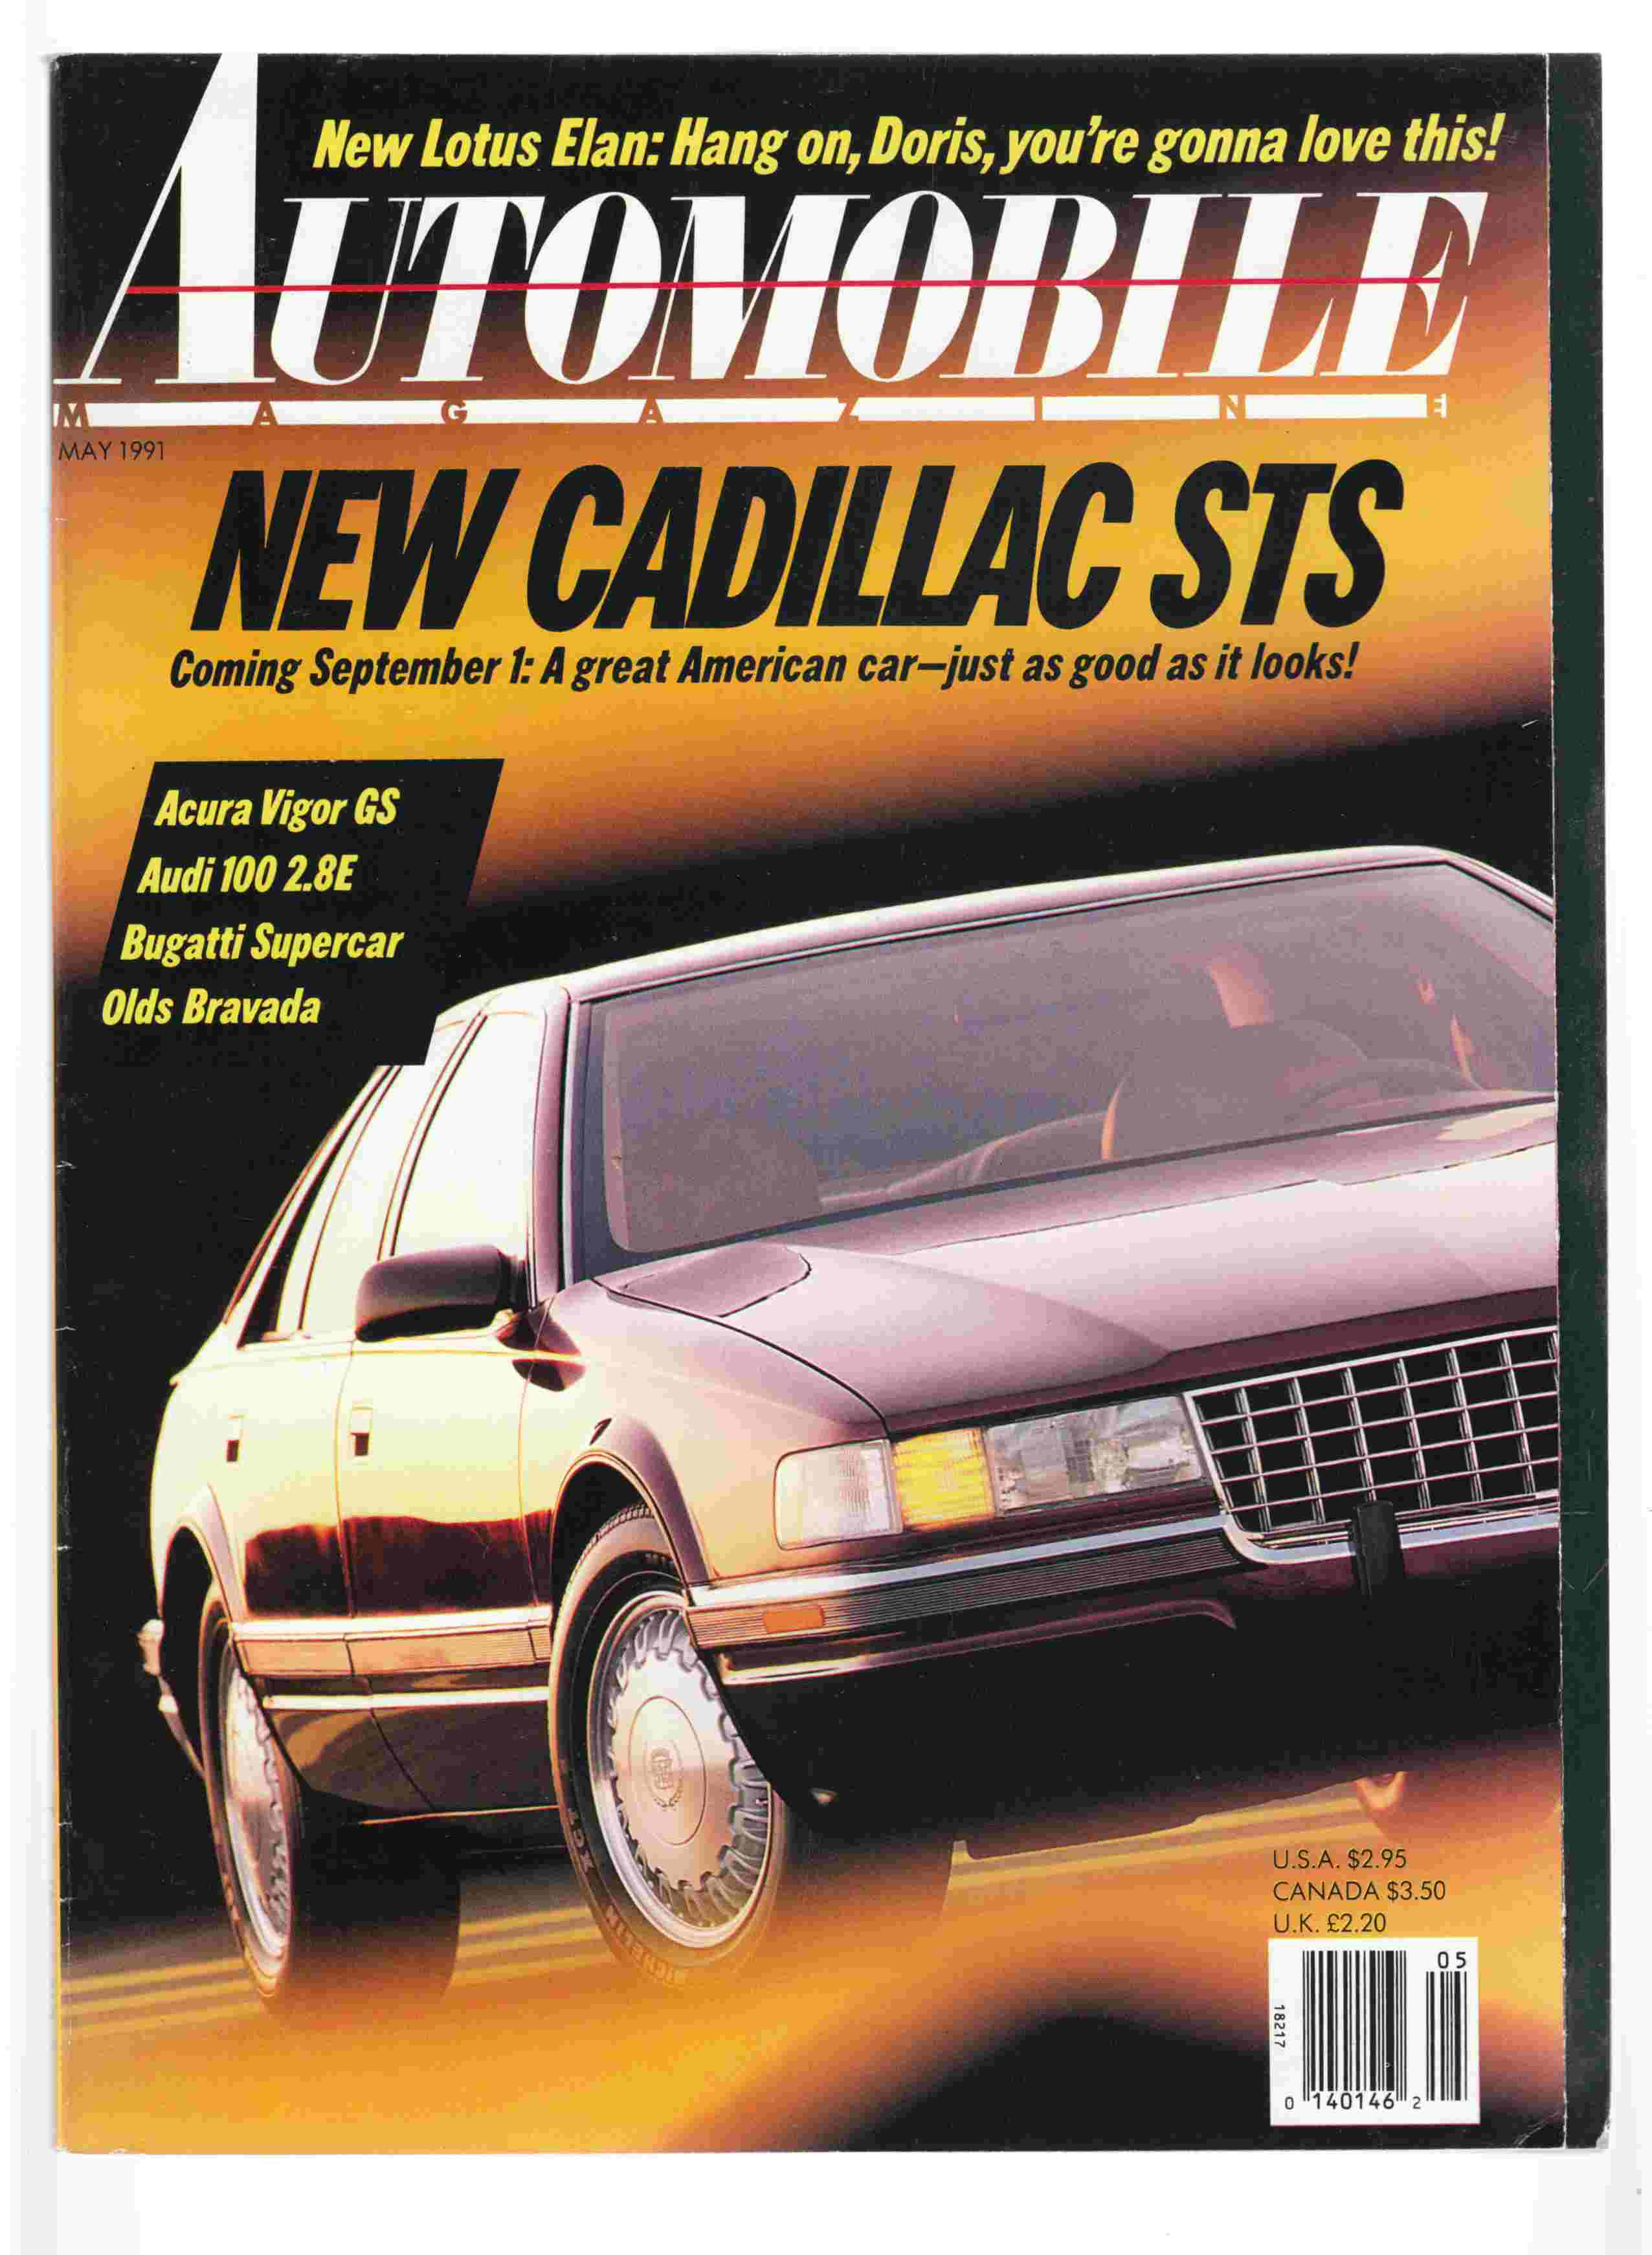 Image for Automobile Magazine May 1991 Vol. 6, No. 2